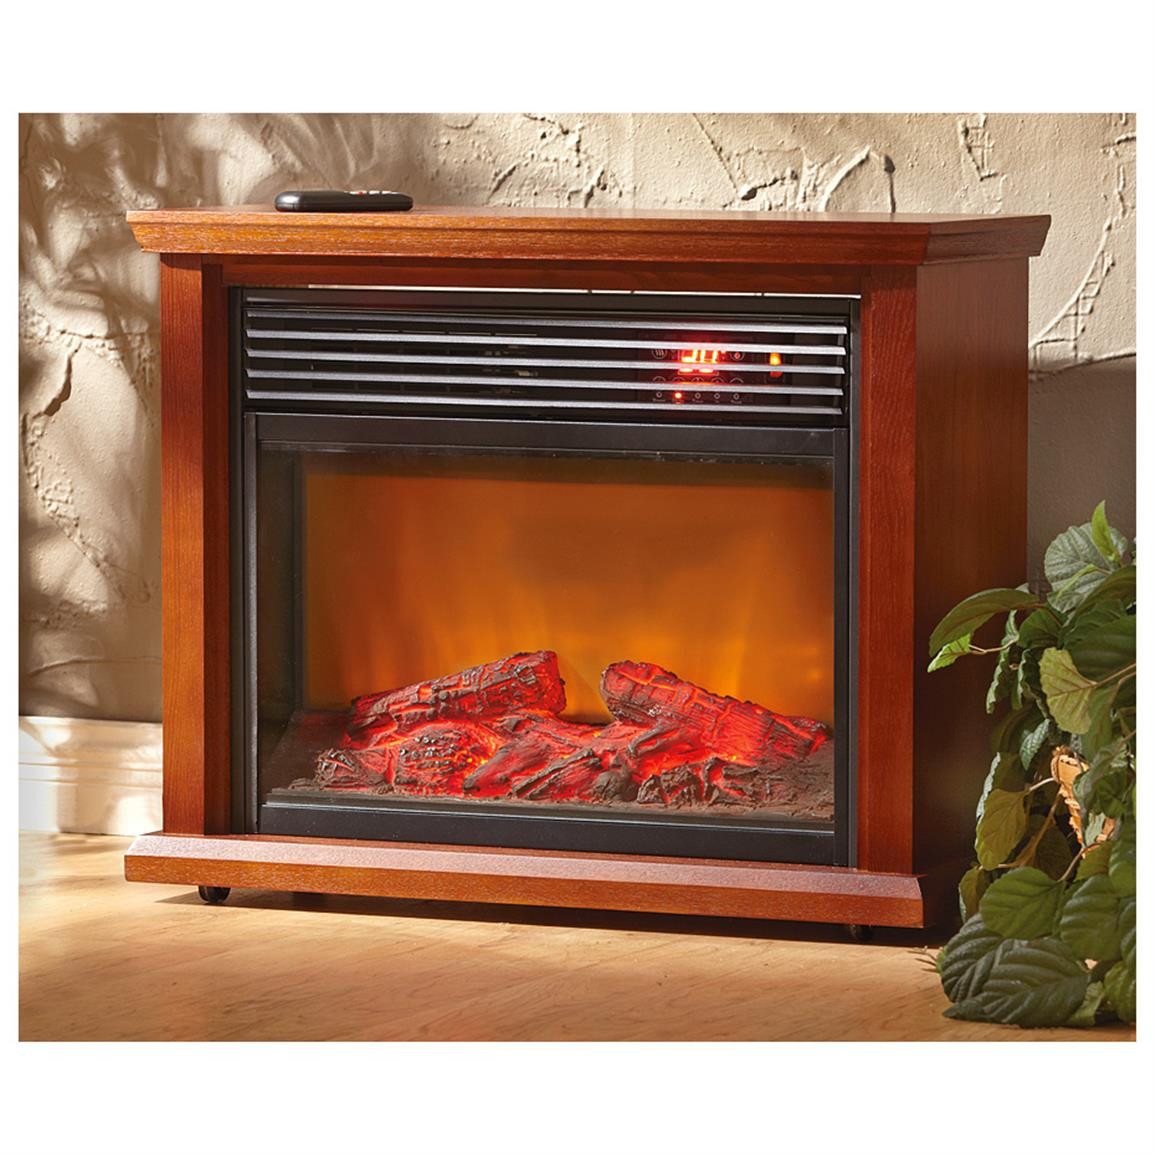 Best ideas about Infrared Fireplace Heater . Save or Pin Infrared Fireplace With Mantel Home Heaters at Now.